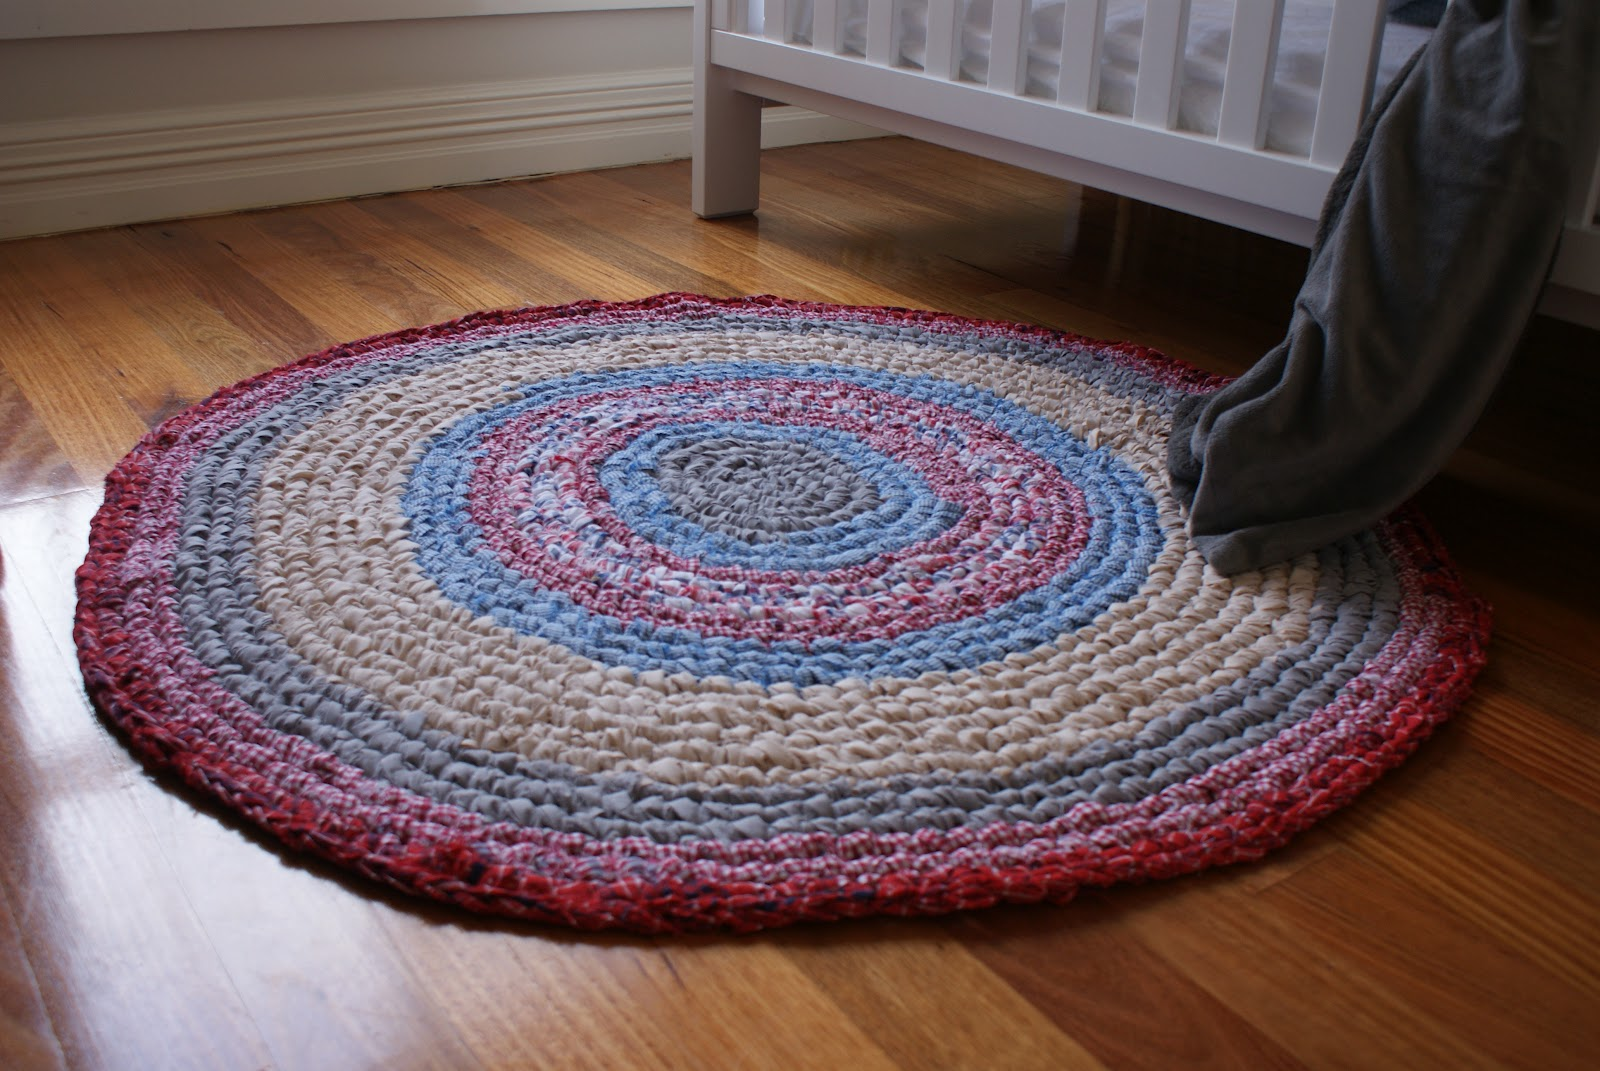 Crocheted rag rug Millie Makes